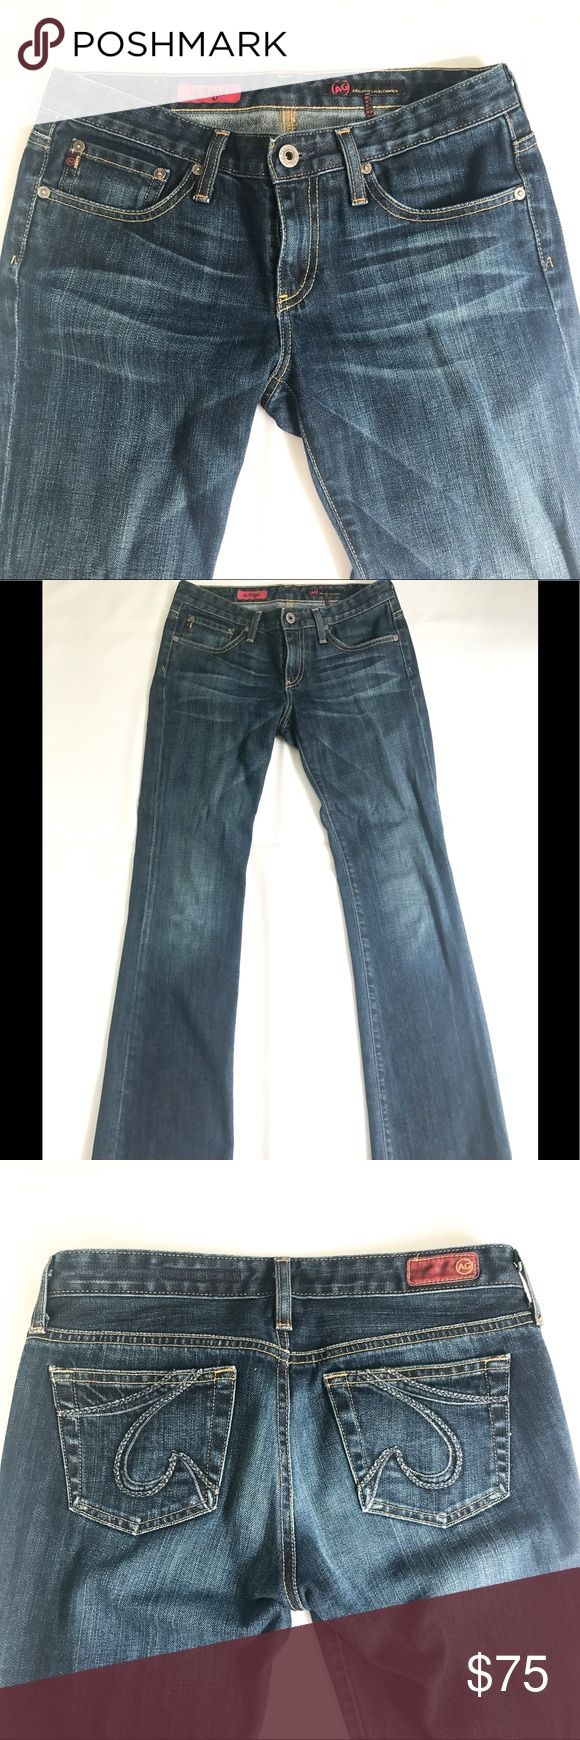 AG by Adriano Goldschmied angel jeans AG by Adriano Goldschmied angel bootcut jeans.  Size 28. Very comfy & soft.  Great condition! Ag Adriano Goldschmied Jeans Boot Cut